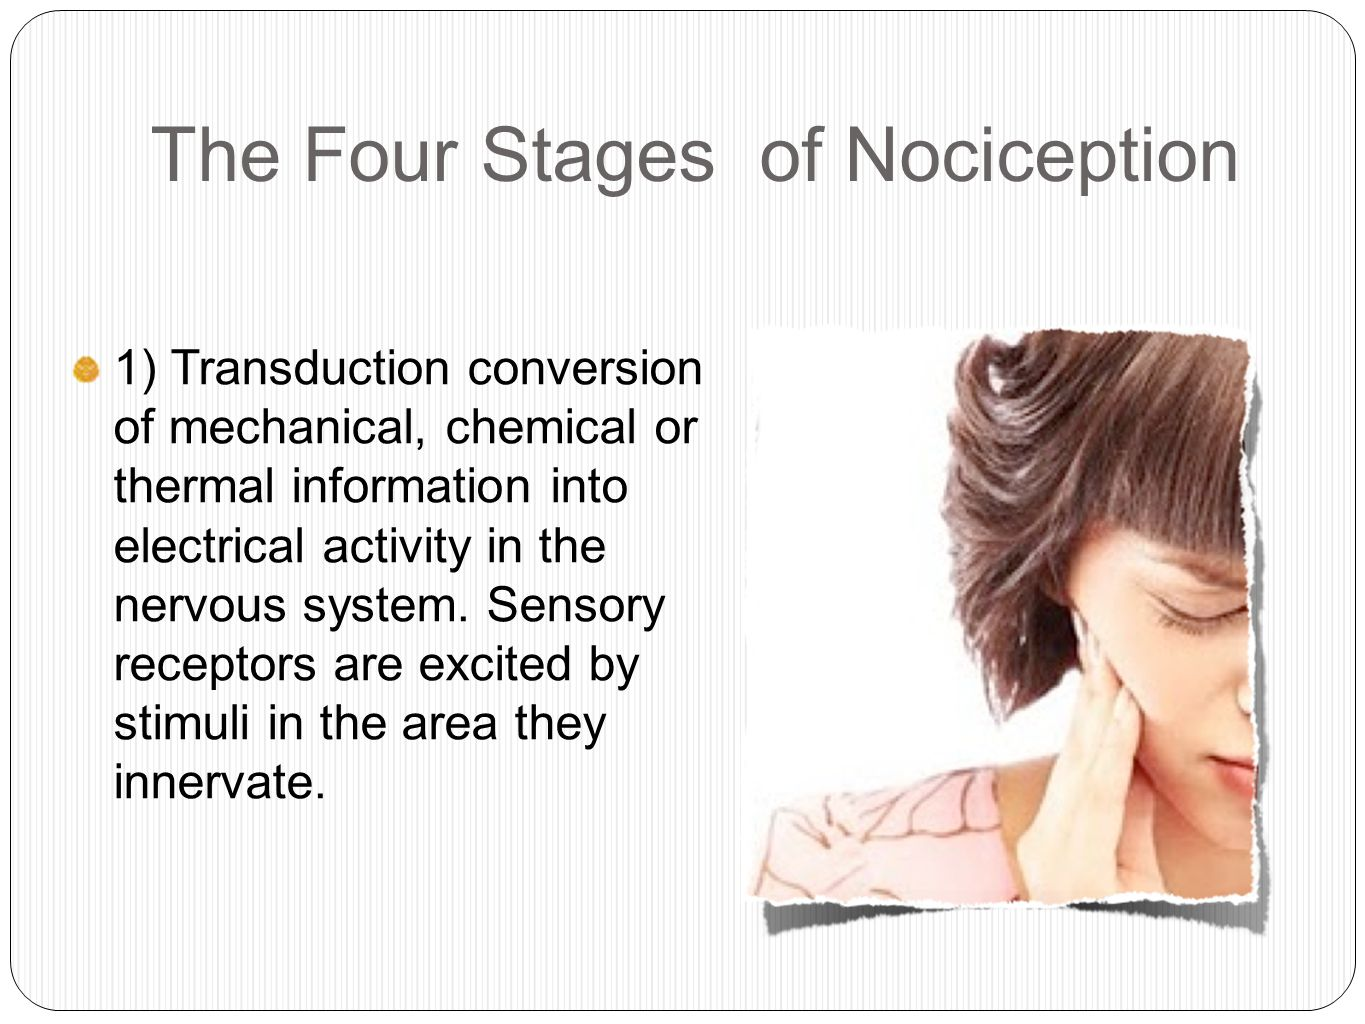 The Four Stages of Nociception 1) Transduction conversion of mechanical, chemical or thermal information into electrical activity in the nervous system.